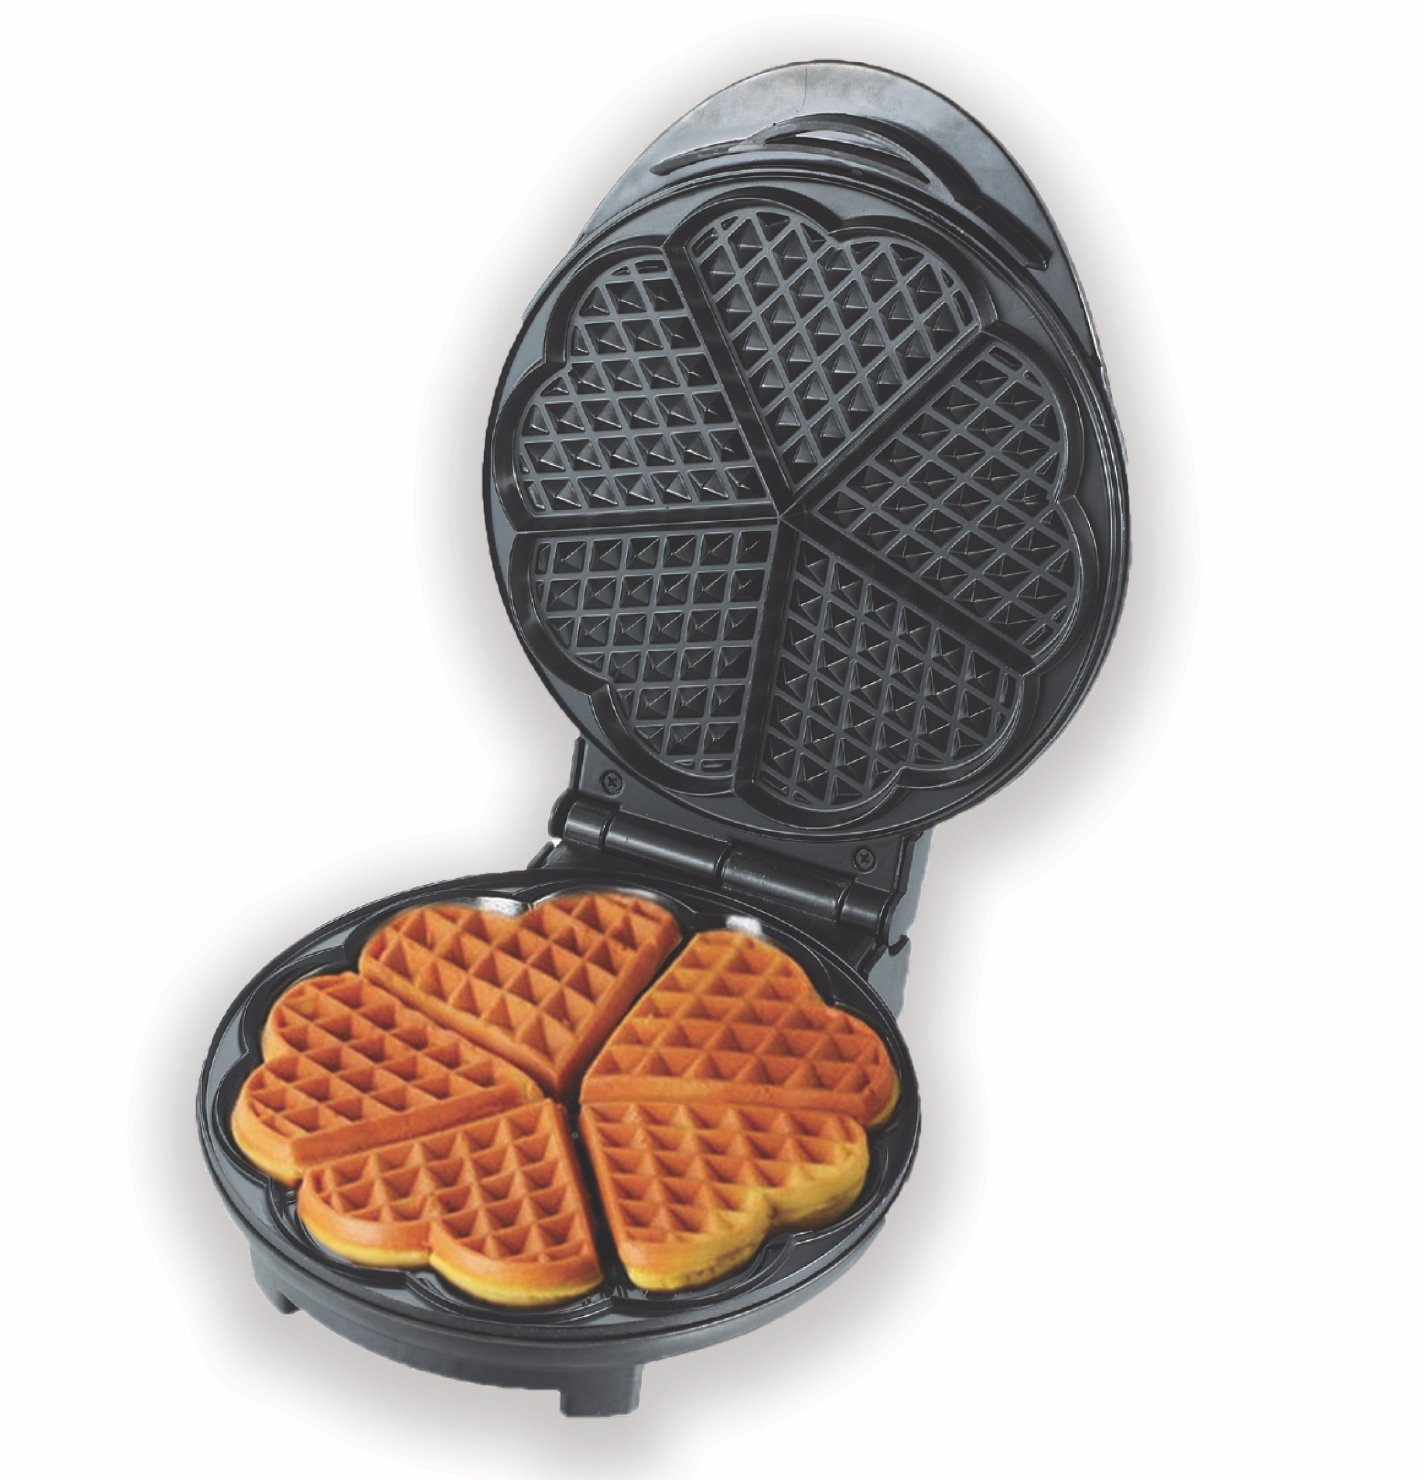 Eco+Chef Portable Heart Shaped Non-Stick Belgian Waffle Maker | Temperature Adjustable Small Kitchen Appliance